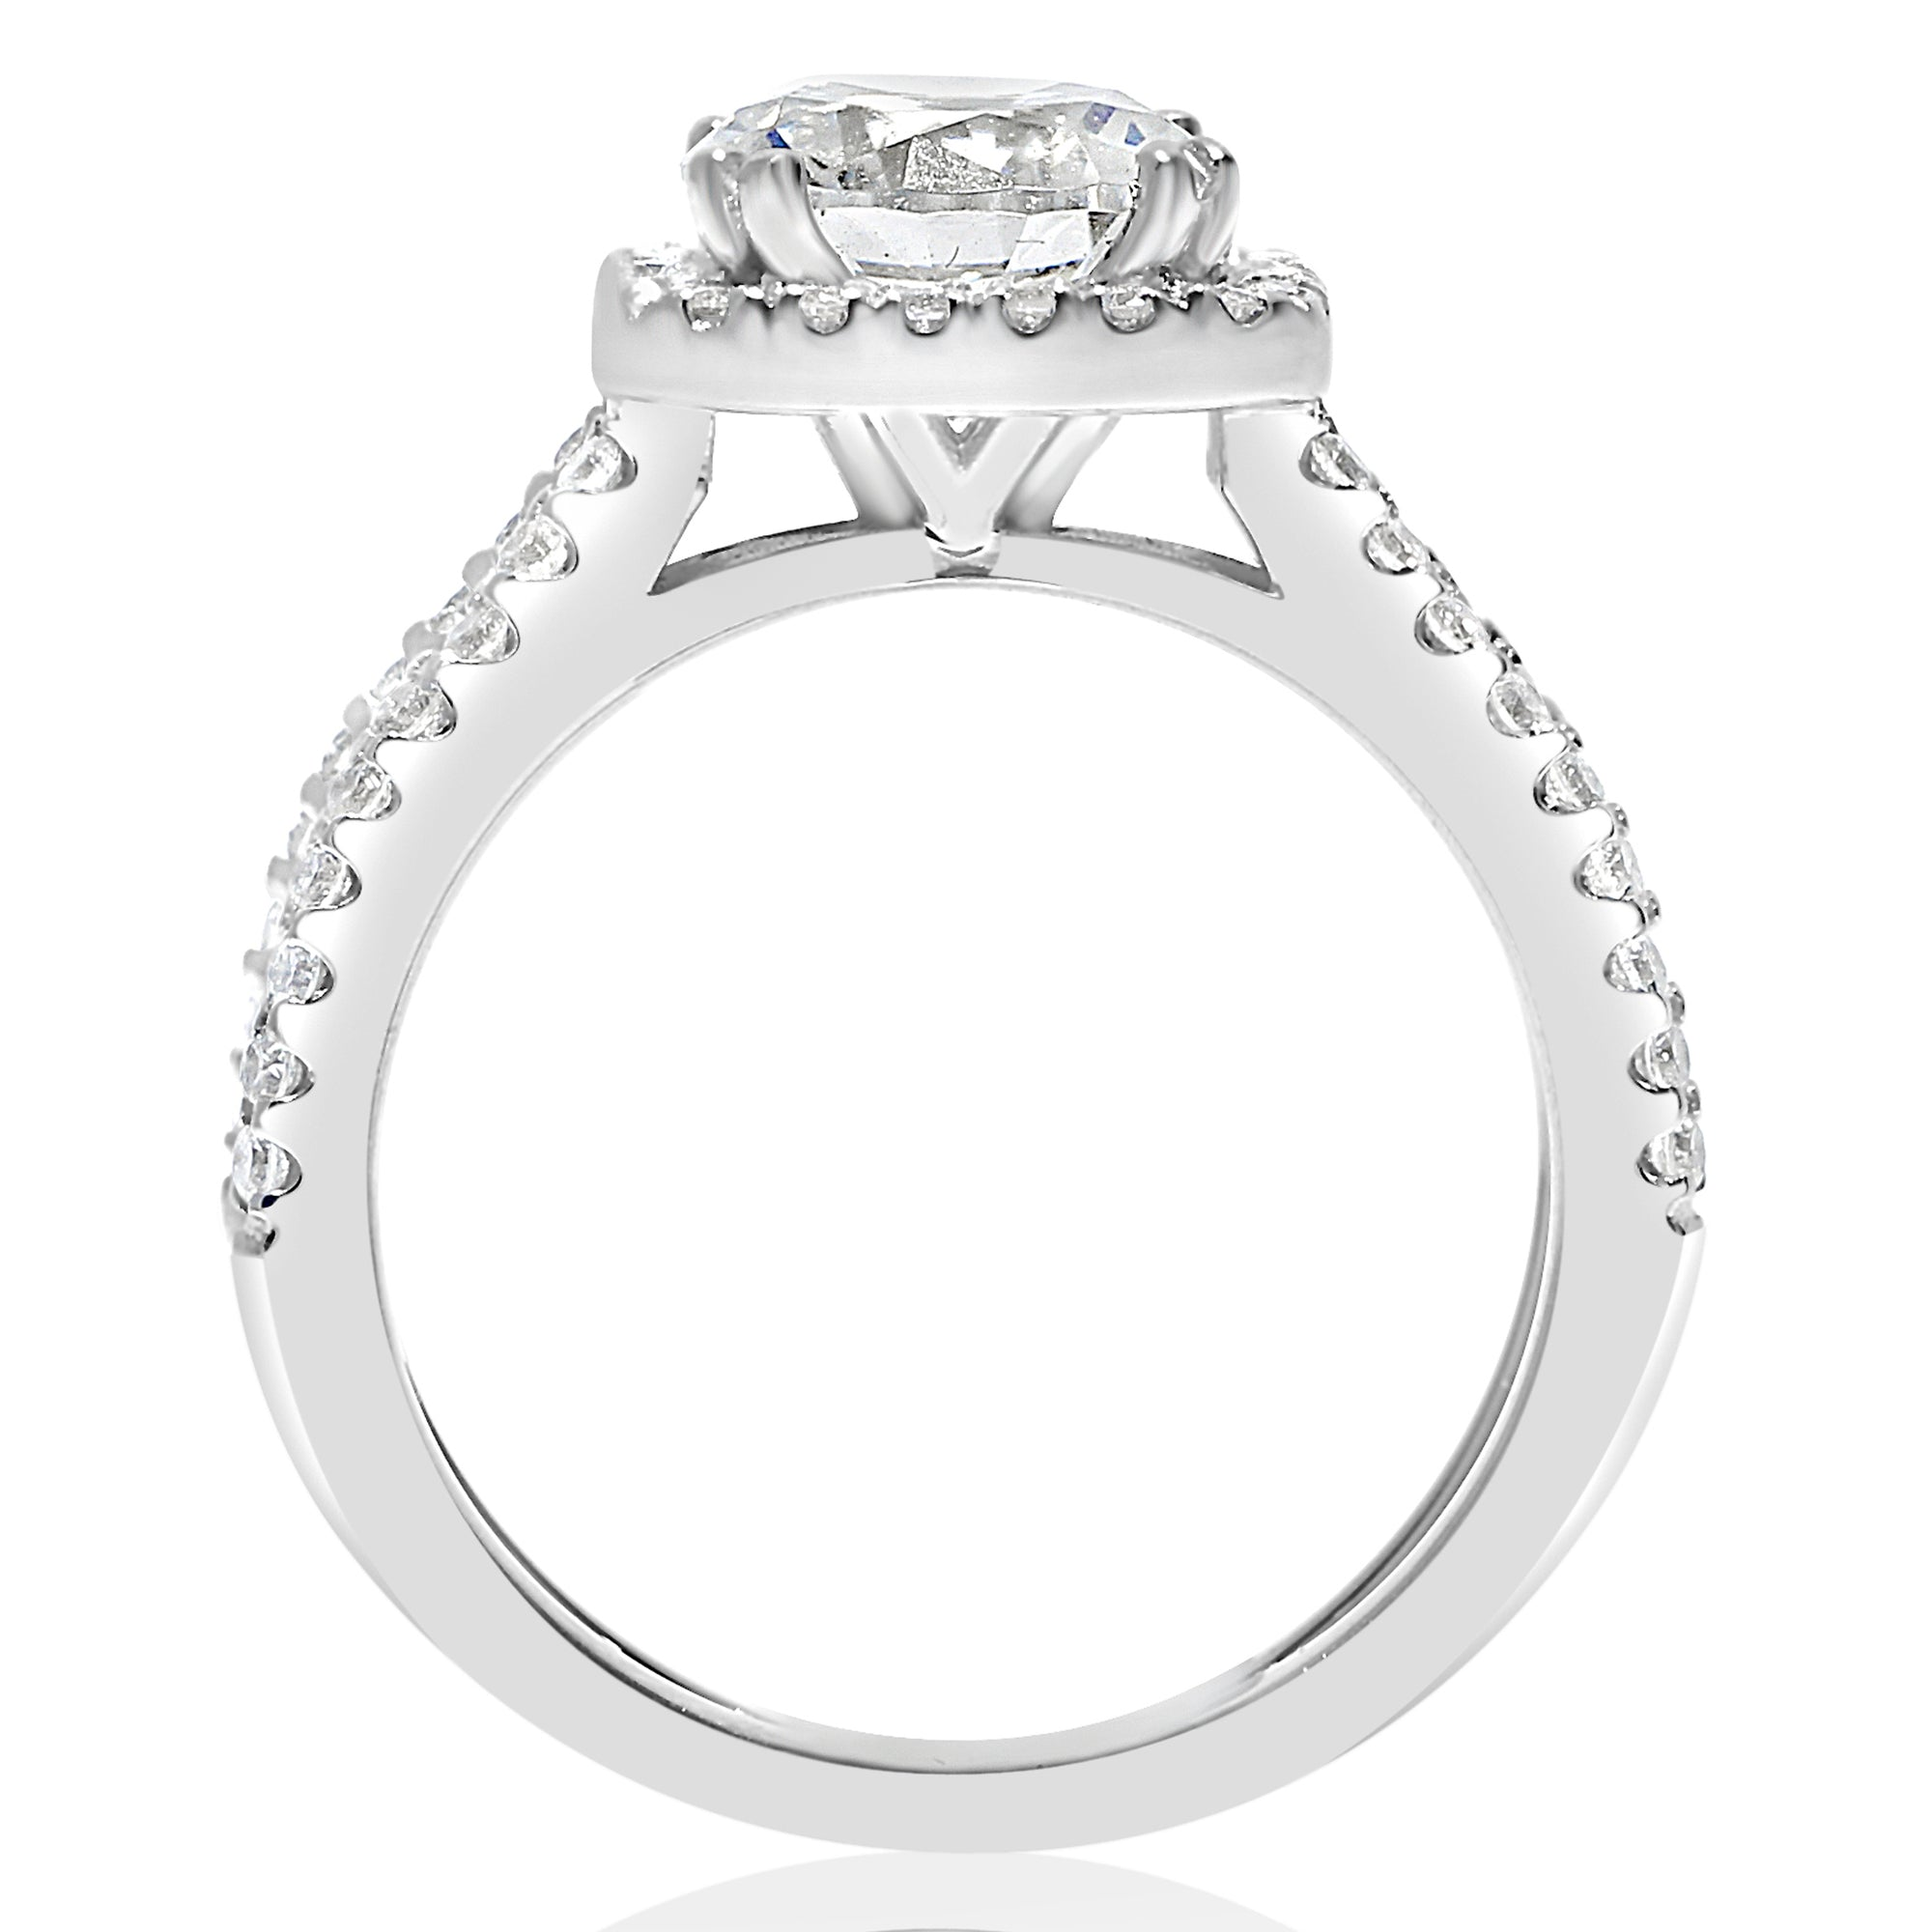 jewellery item mondial ri ch this rounded share diamond